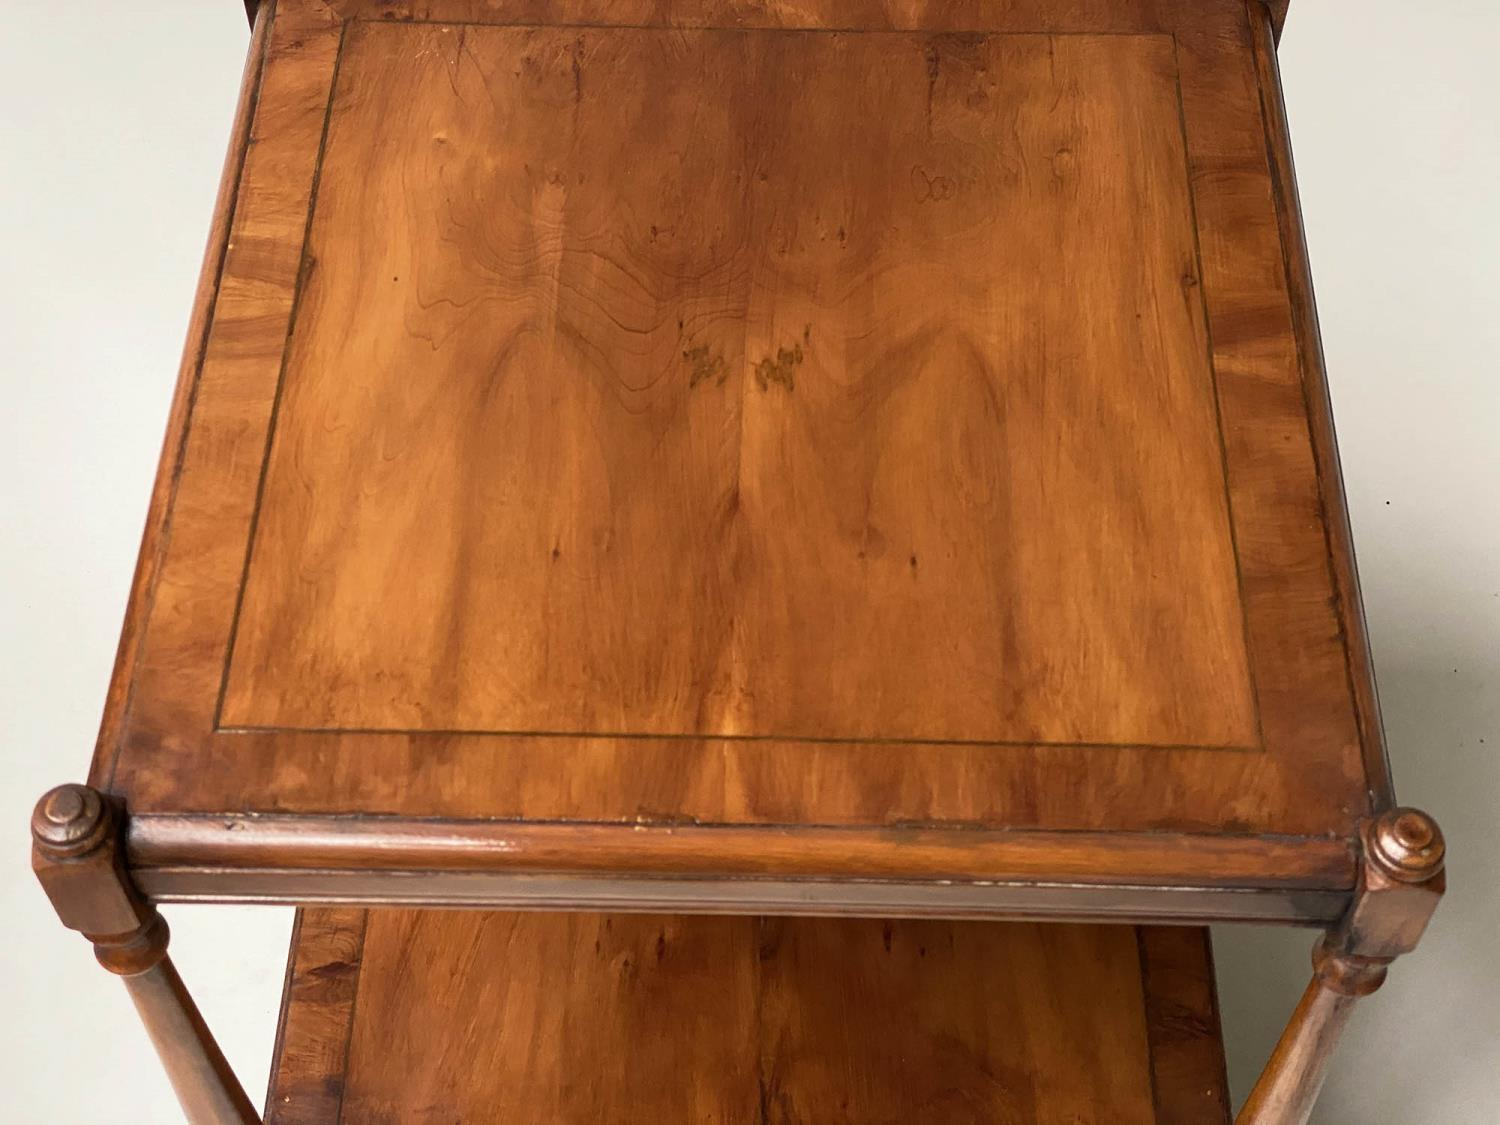 LAMP TABLES, a pair, George III style yewwood of two tiers, each with drawer, 45cm x 45cm x 60cm - Image 5 of 6